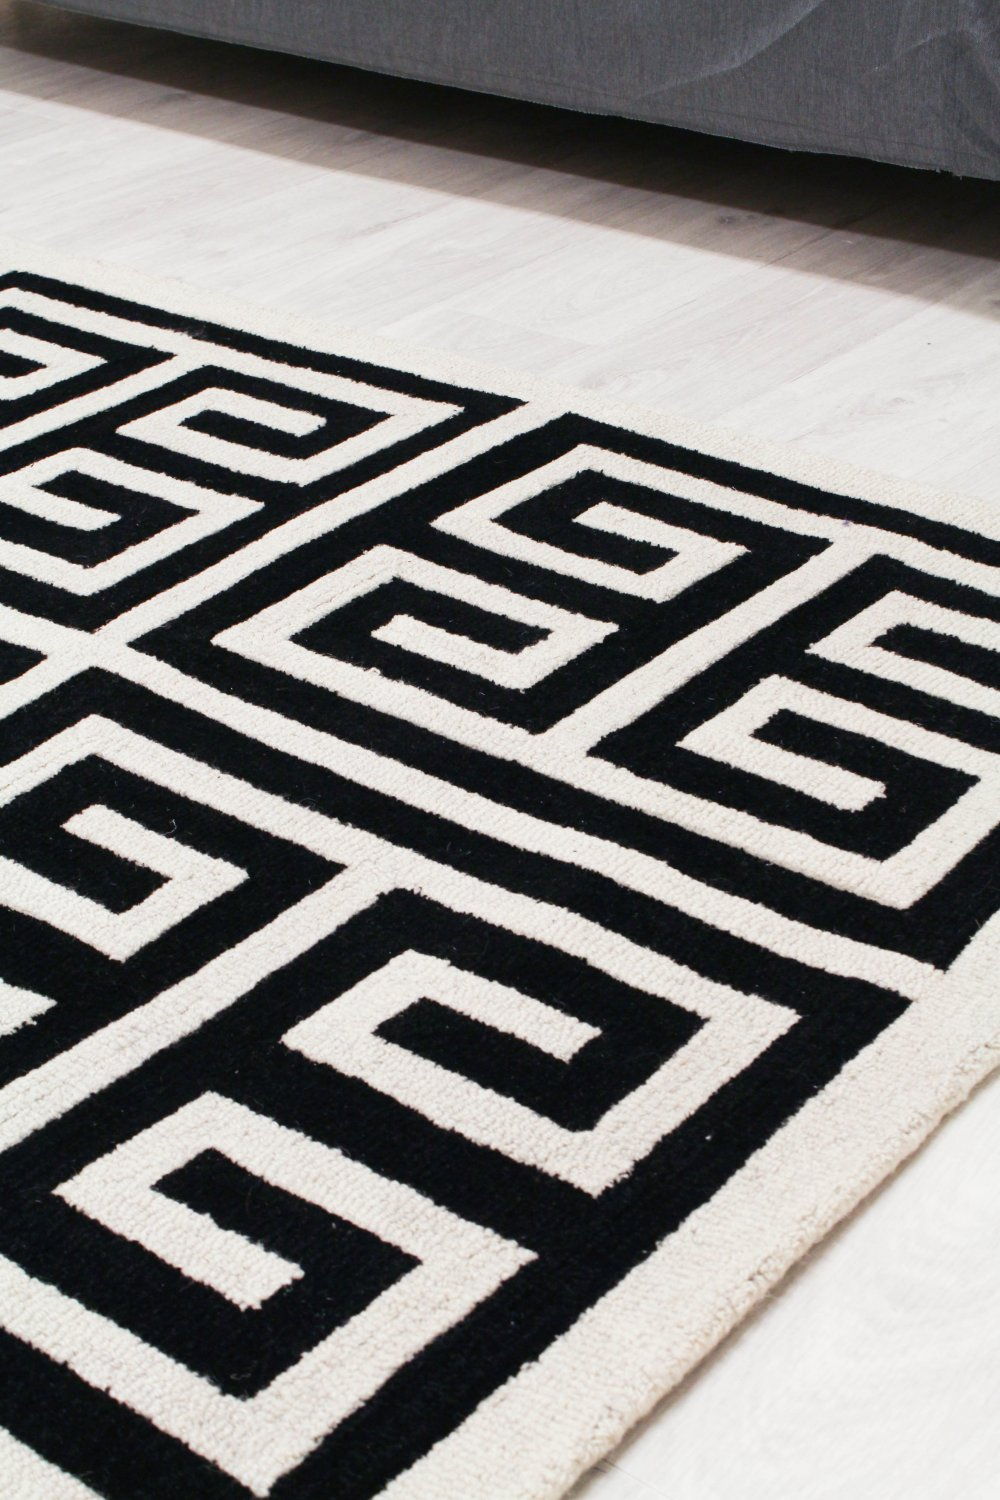 Wool Rug Gimari Black White